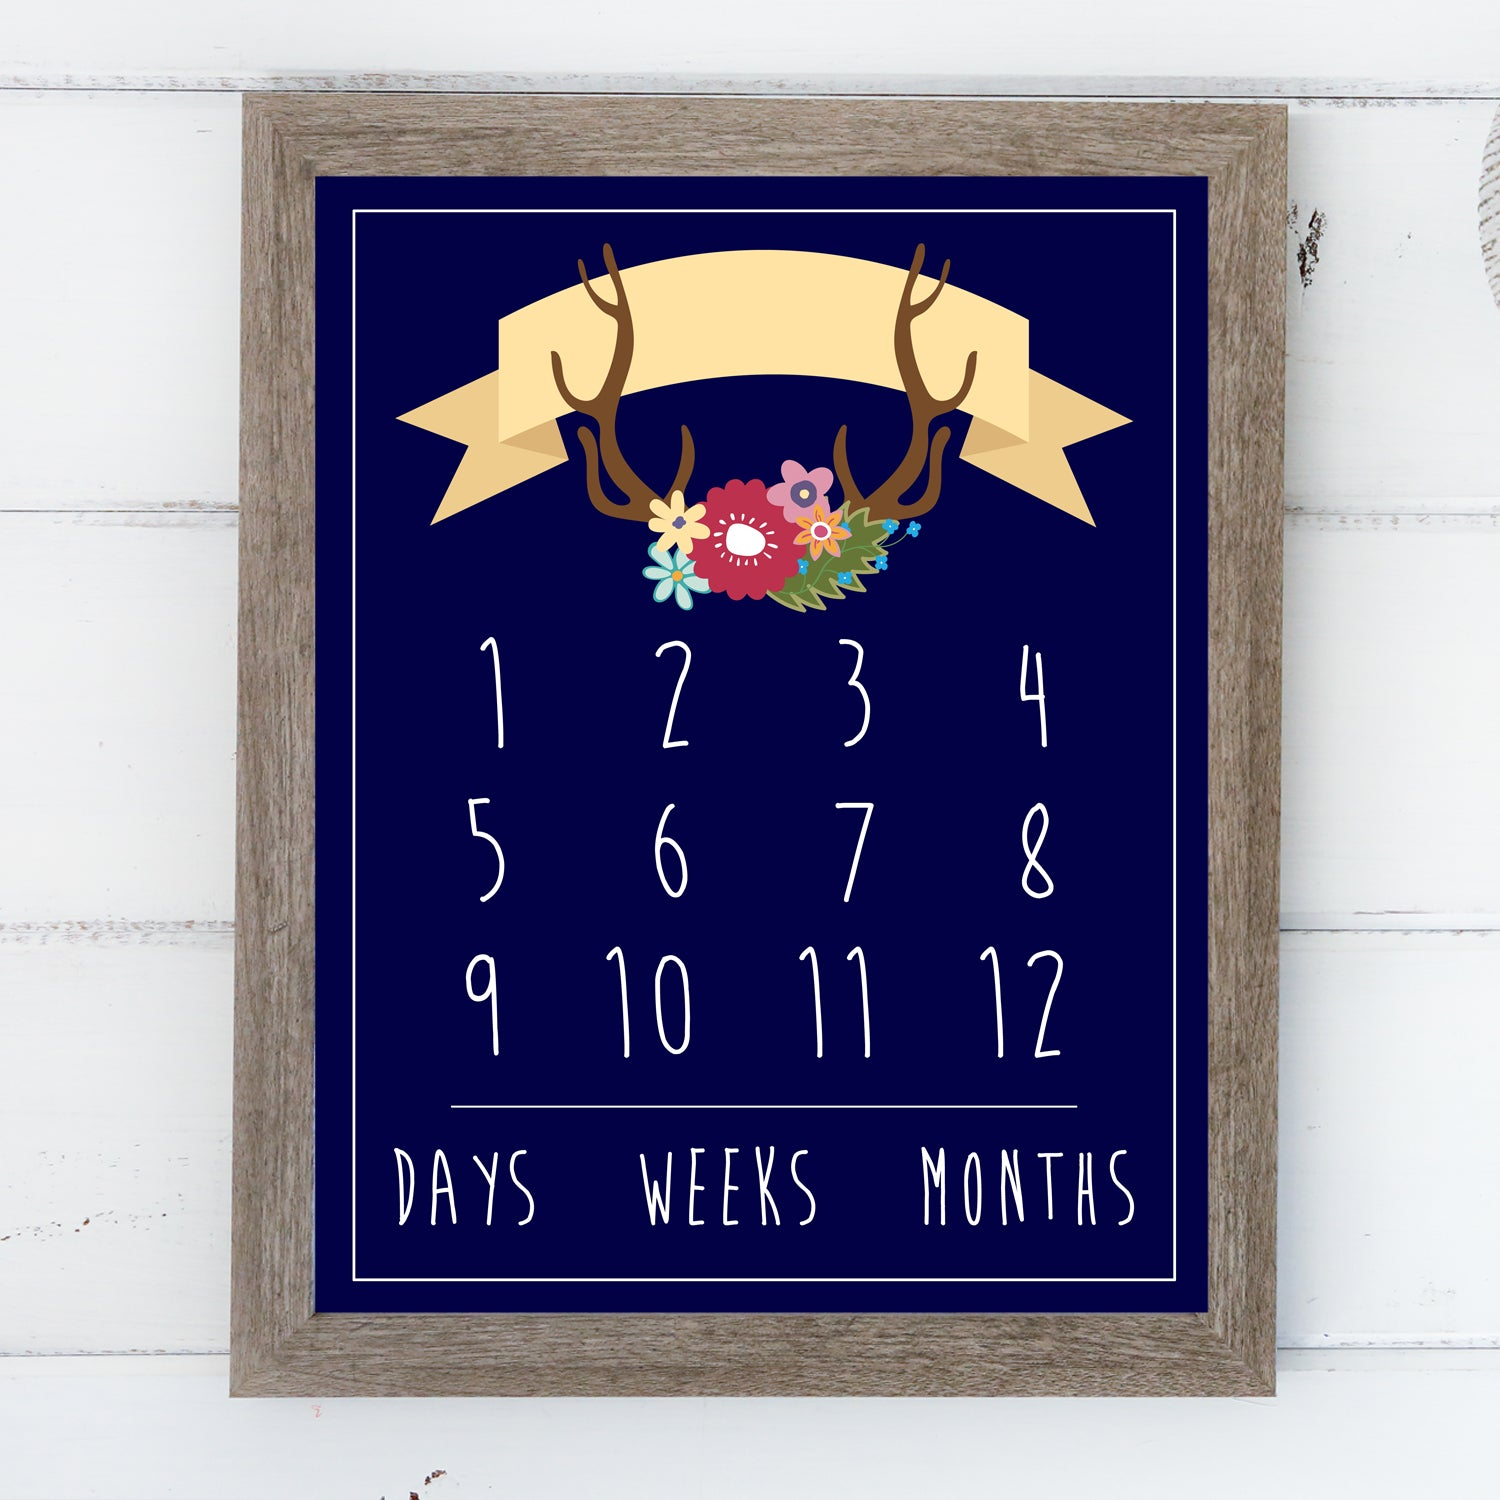 Additional Insert: Boho Numbers - Baby Day/Week/Month Tracker